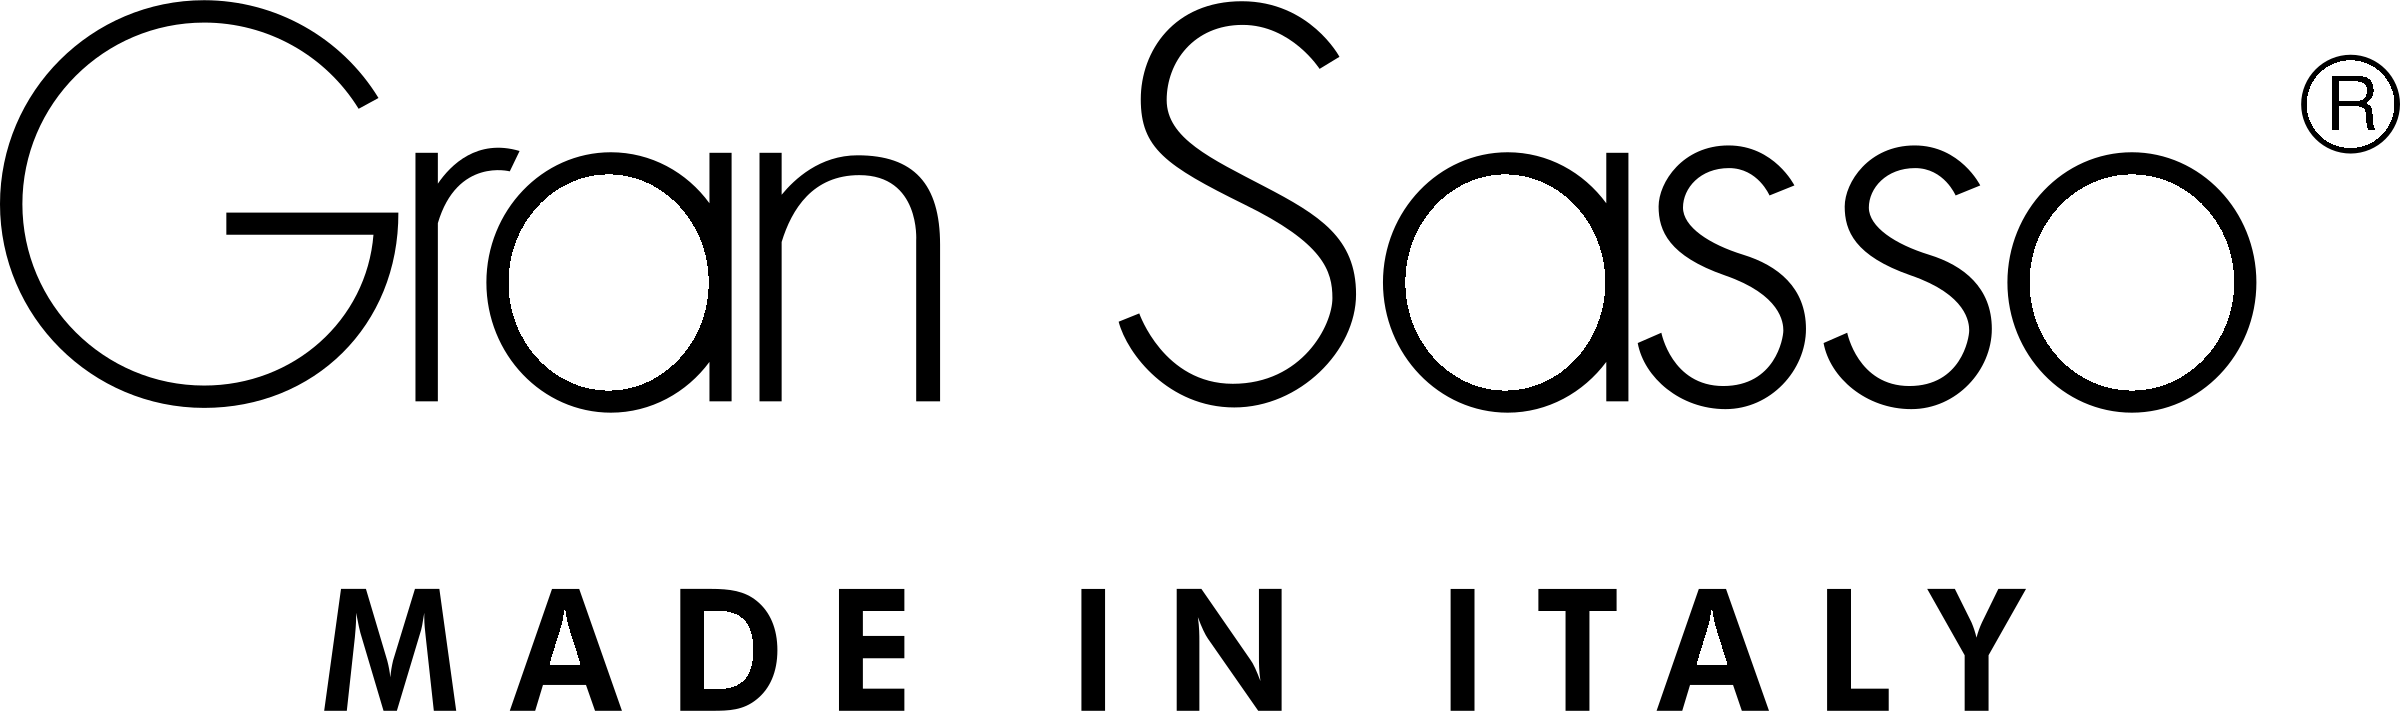 gran-sasso-logo-black-and-white.png